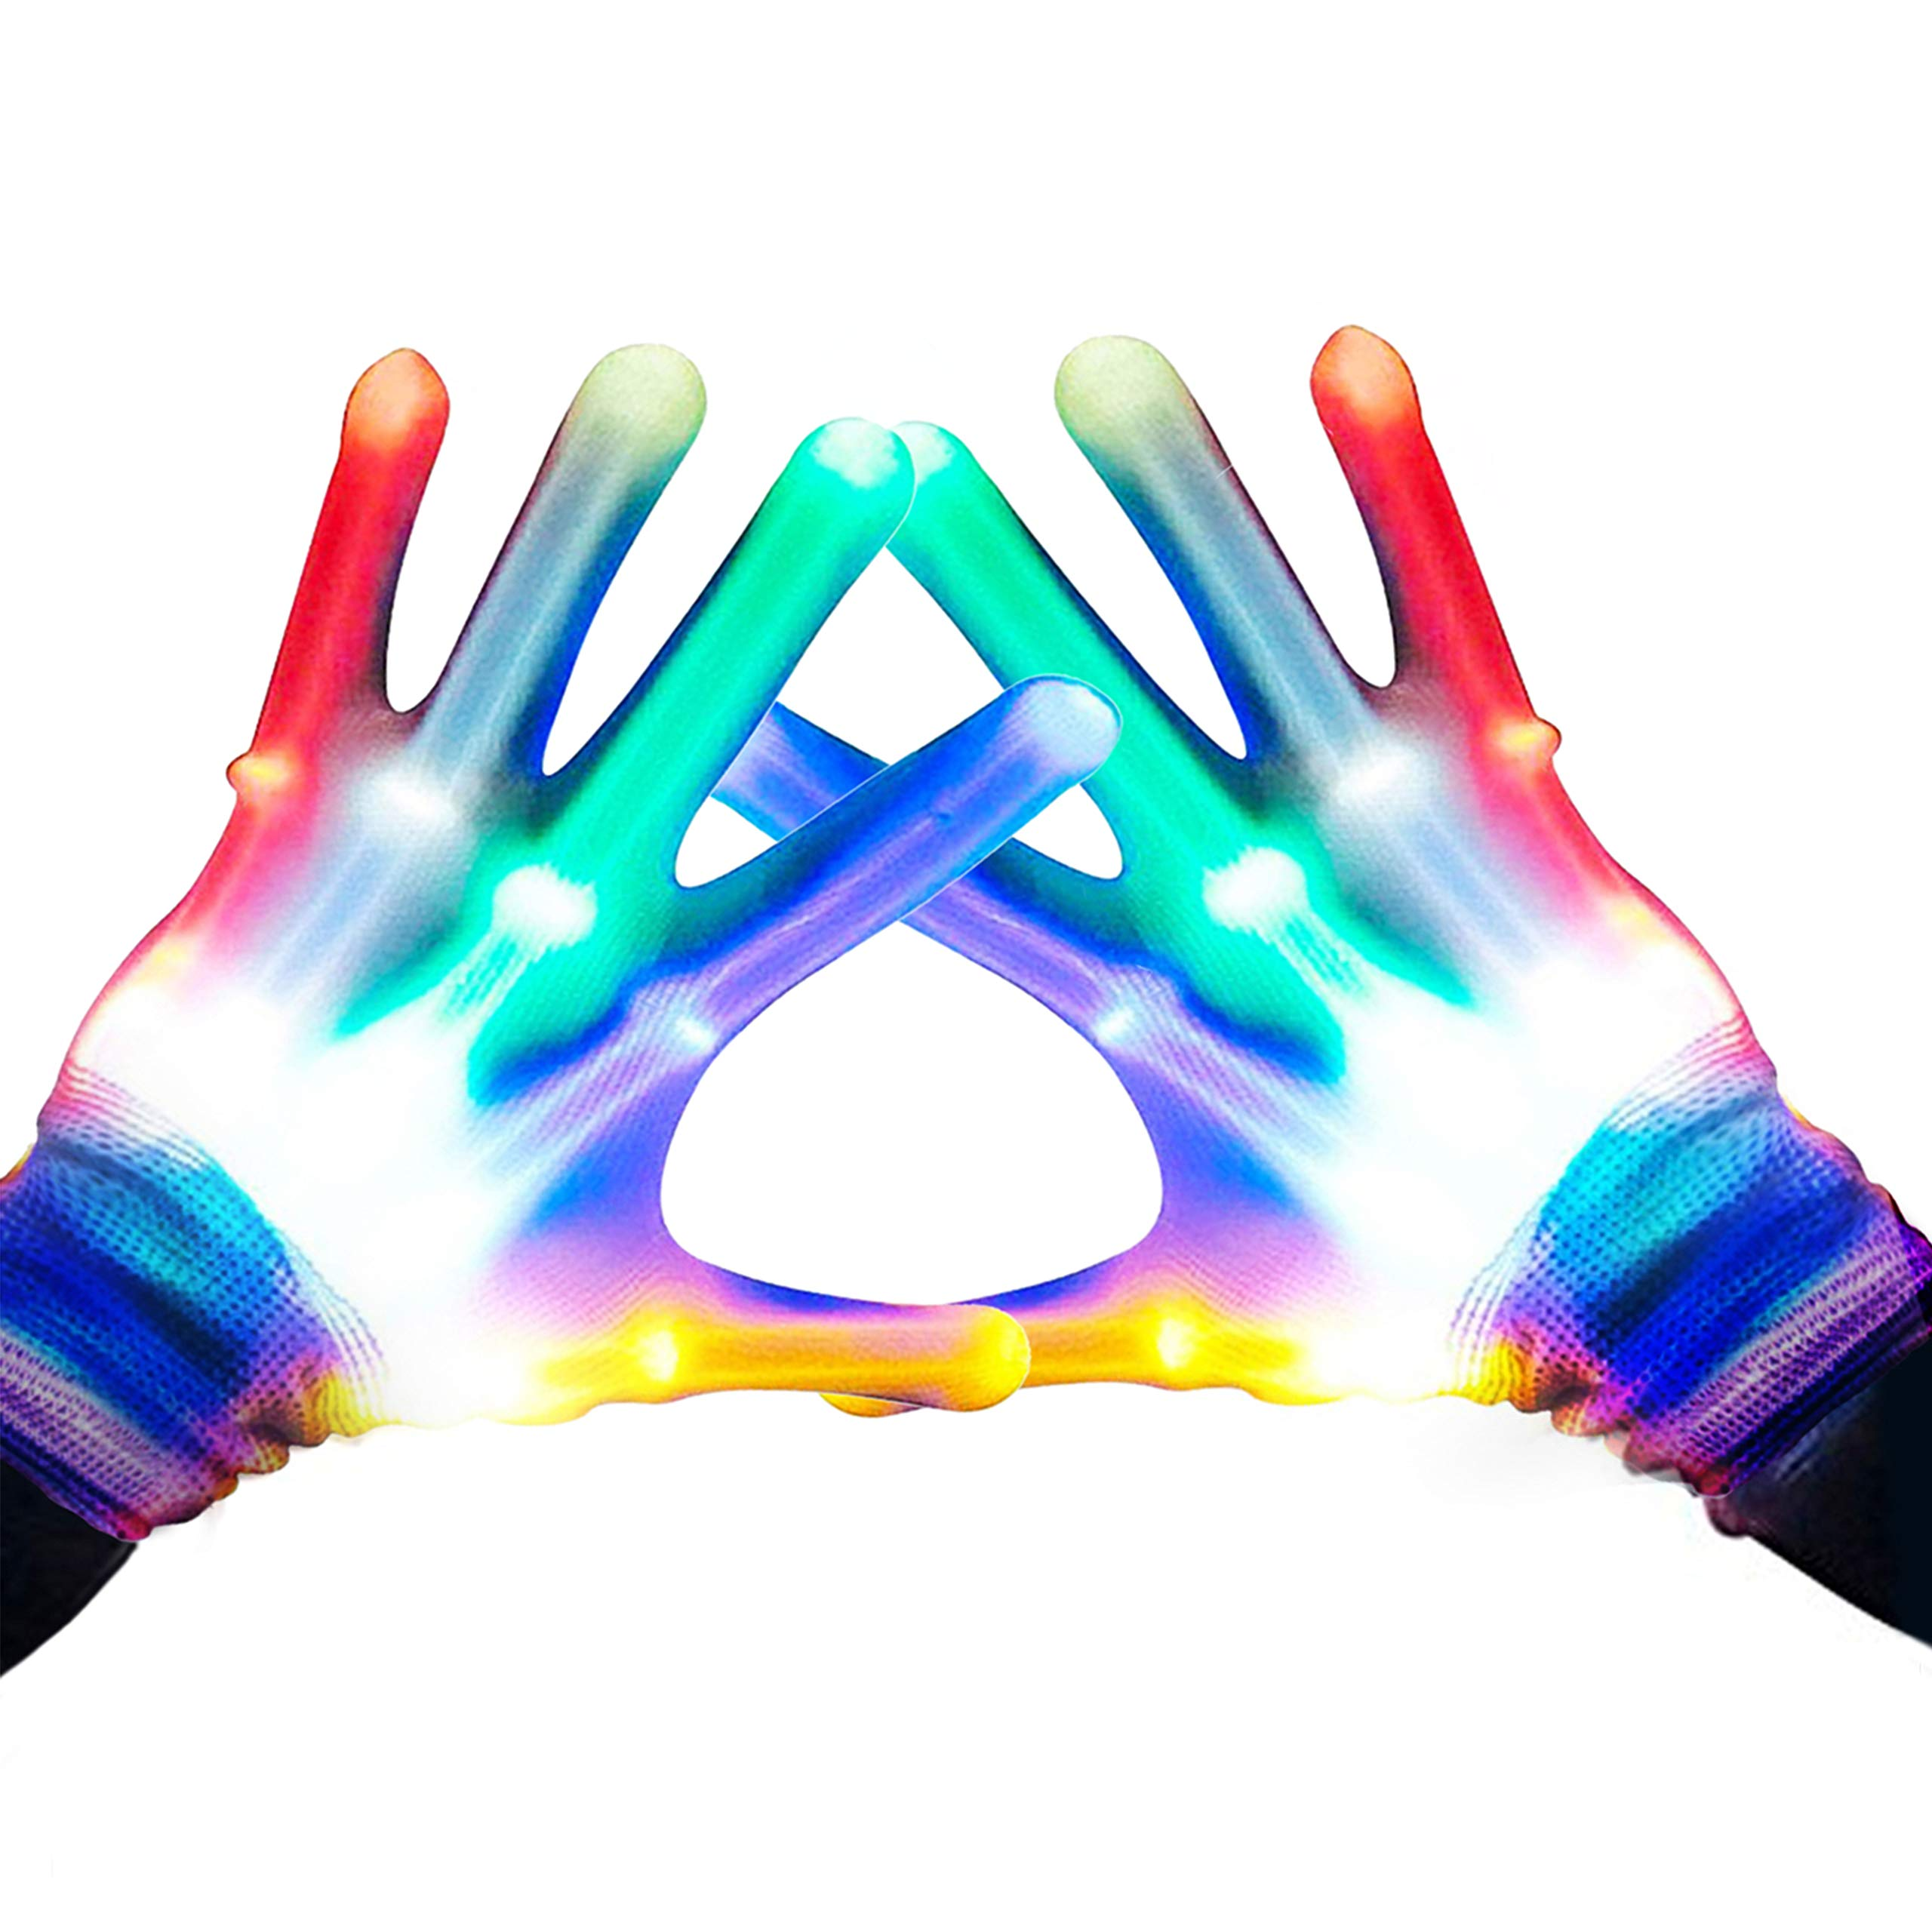 Gifts for Teen Girls, TOPTOY Flashing LED Gloves Gift Ideas for Teen Boys Girls Autism Cool Toys for 3-12 Years Old Boys Girls Christmas Xmas Stocking Stuffers Stocking Fillers Halloween TTUSTTG01 by TOPTOY